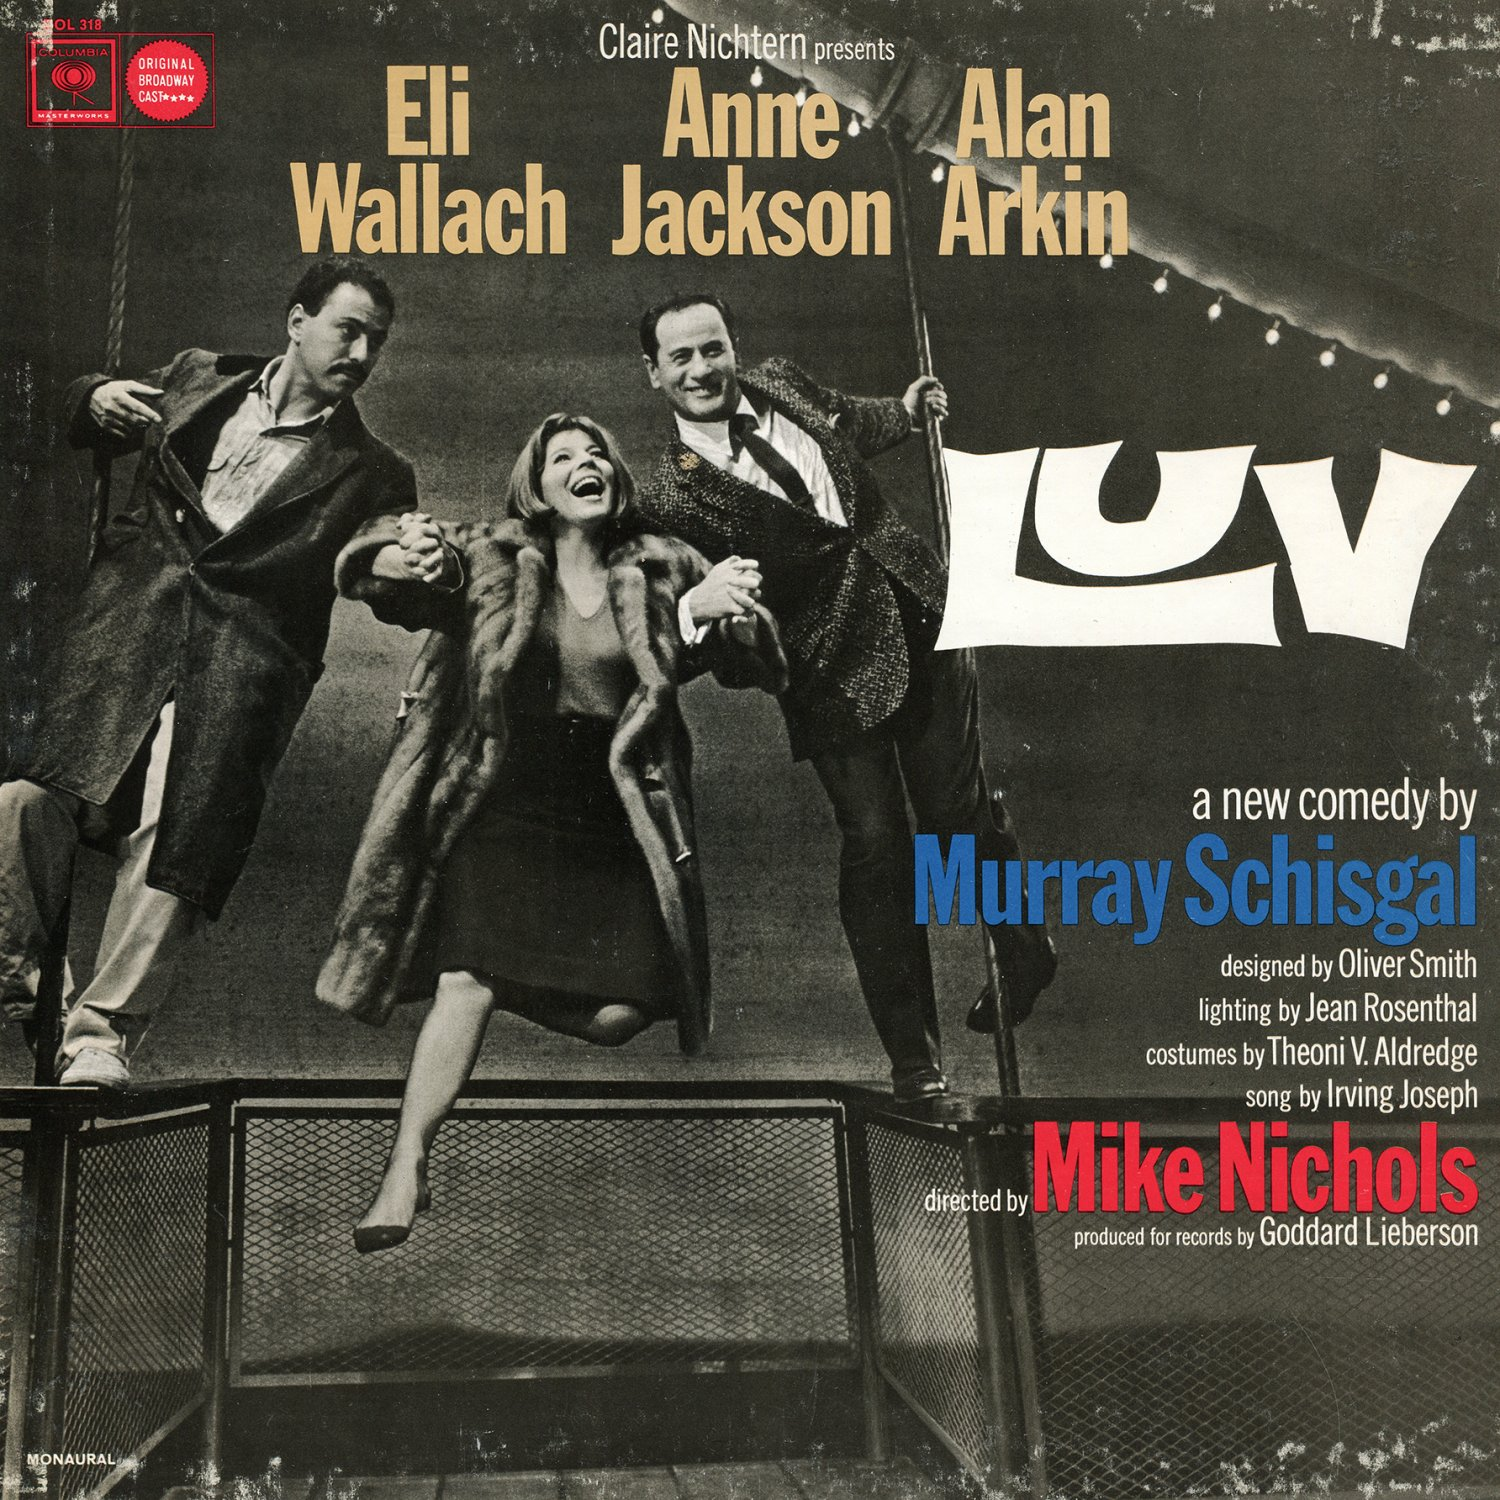 Luv - Original Broadway Cast Recording, A New Comedy by Murray Schisgal LP/CD